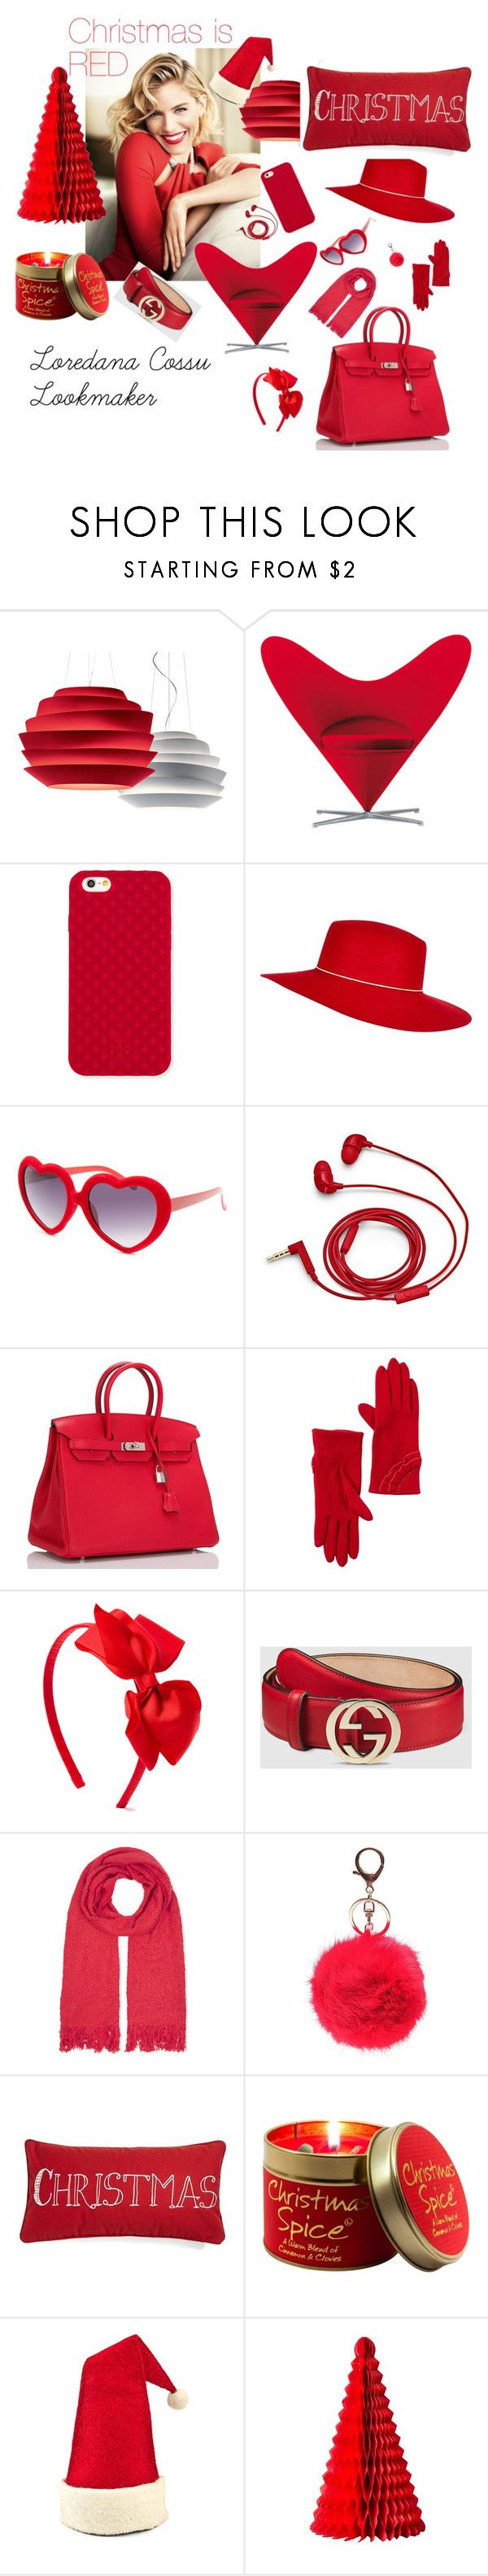 """Christmas is Red"" by loredanacossu on Polyvore featuring moda, Foscarini, Tory Burch, River Island, Full Tilt, FOSSIL, Hermès, Vincent Pradier, Gucci e Oasis"